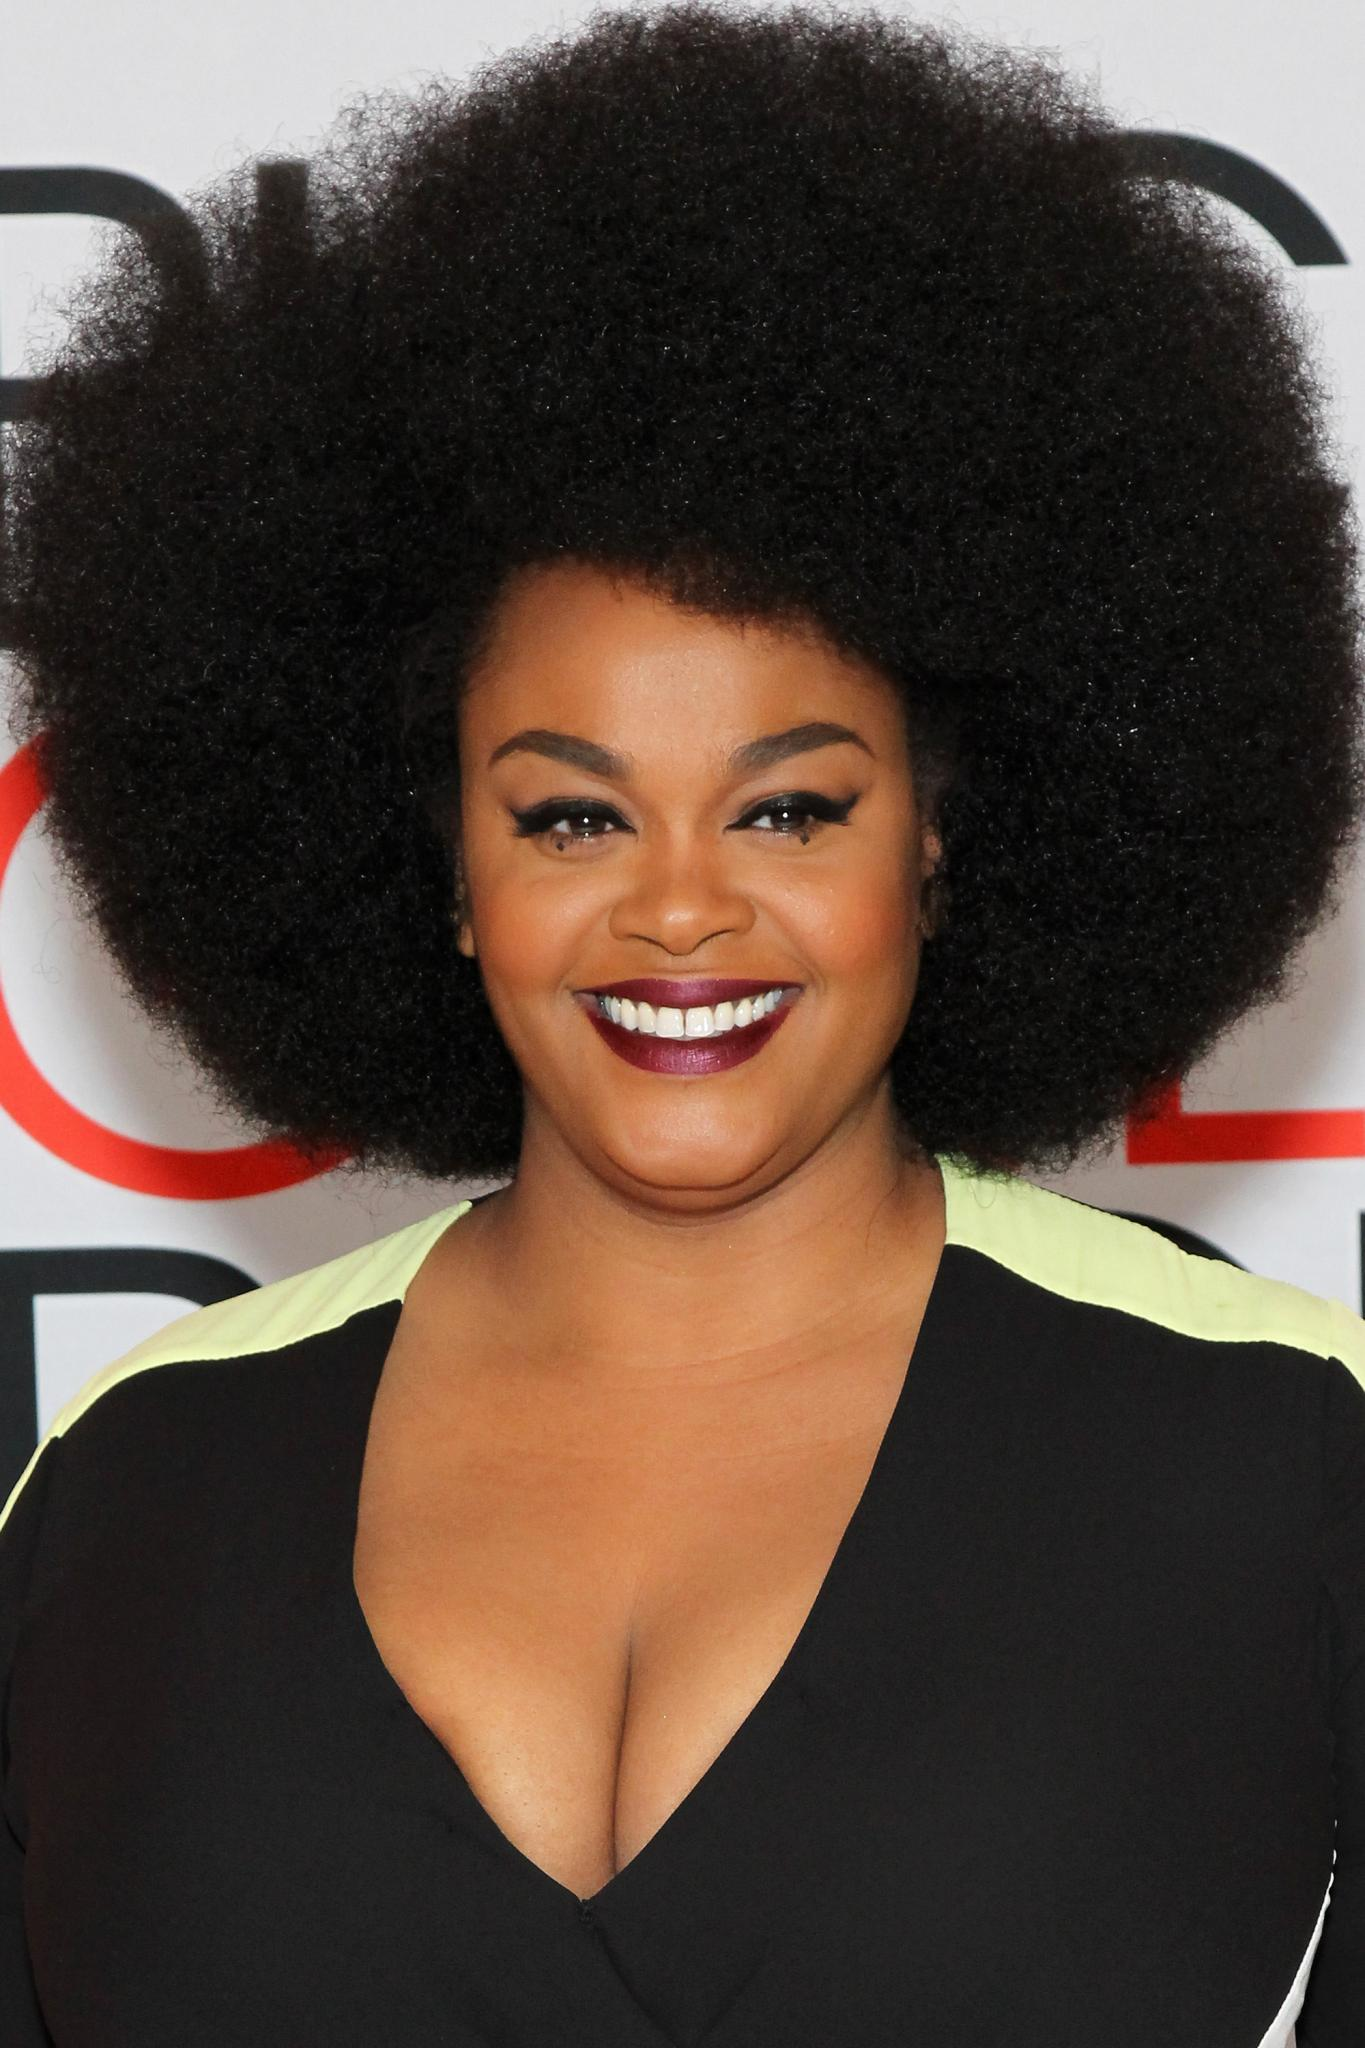 EXCLUSIVE: Jill Scott On New Album 'Woman,' Her Son Jet & Advice for New Artists